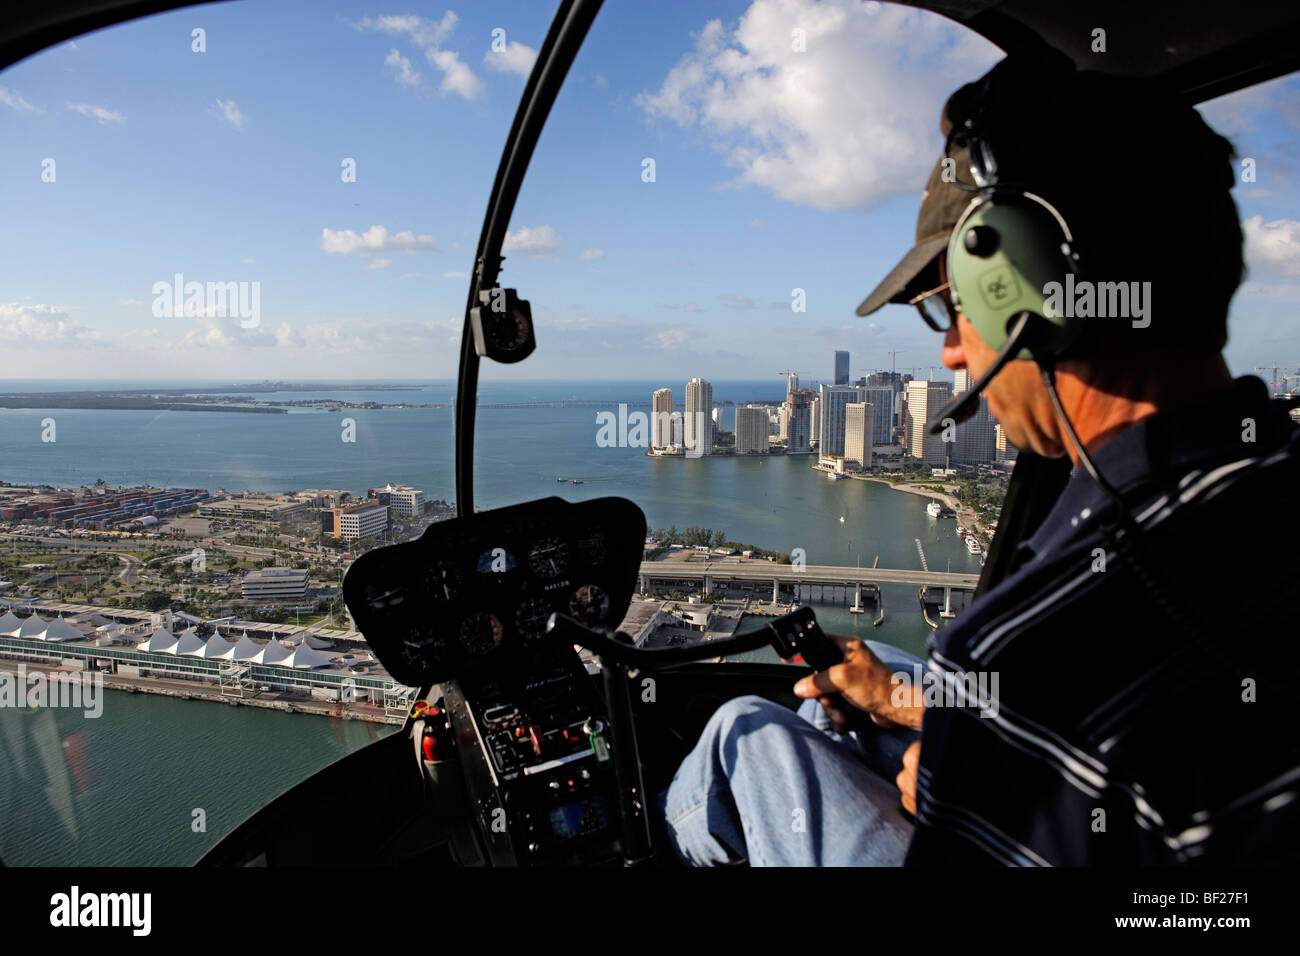 Pilot in a helicopter with view at Dodge Island and Downtown Miami, Miami, Florida, USA - Stock Image